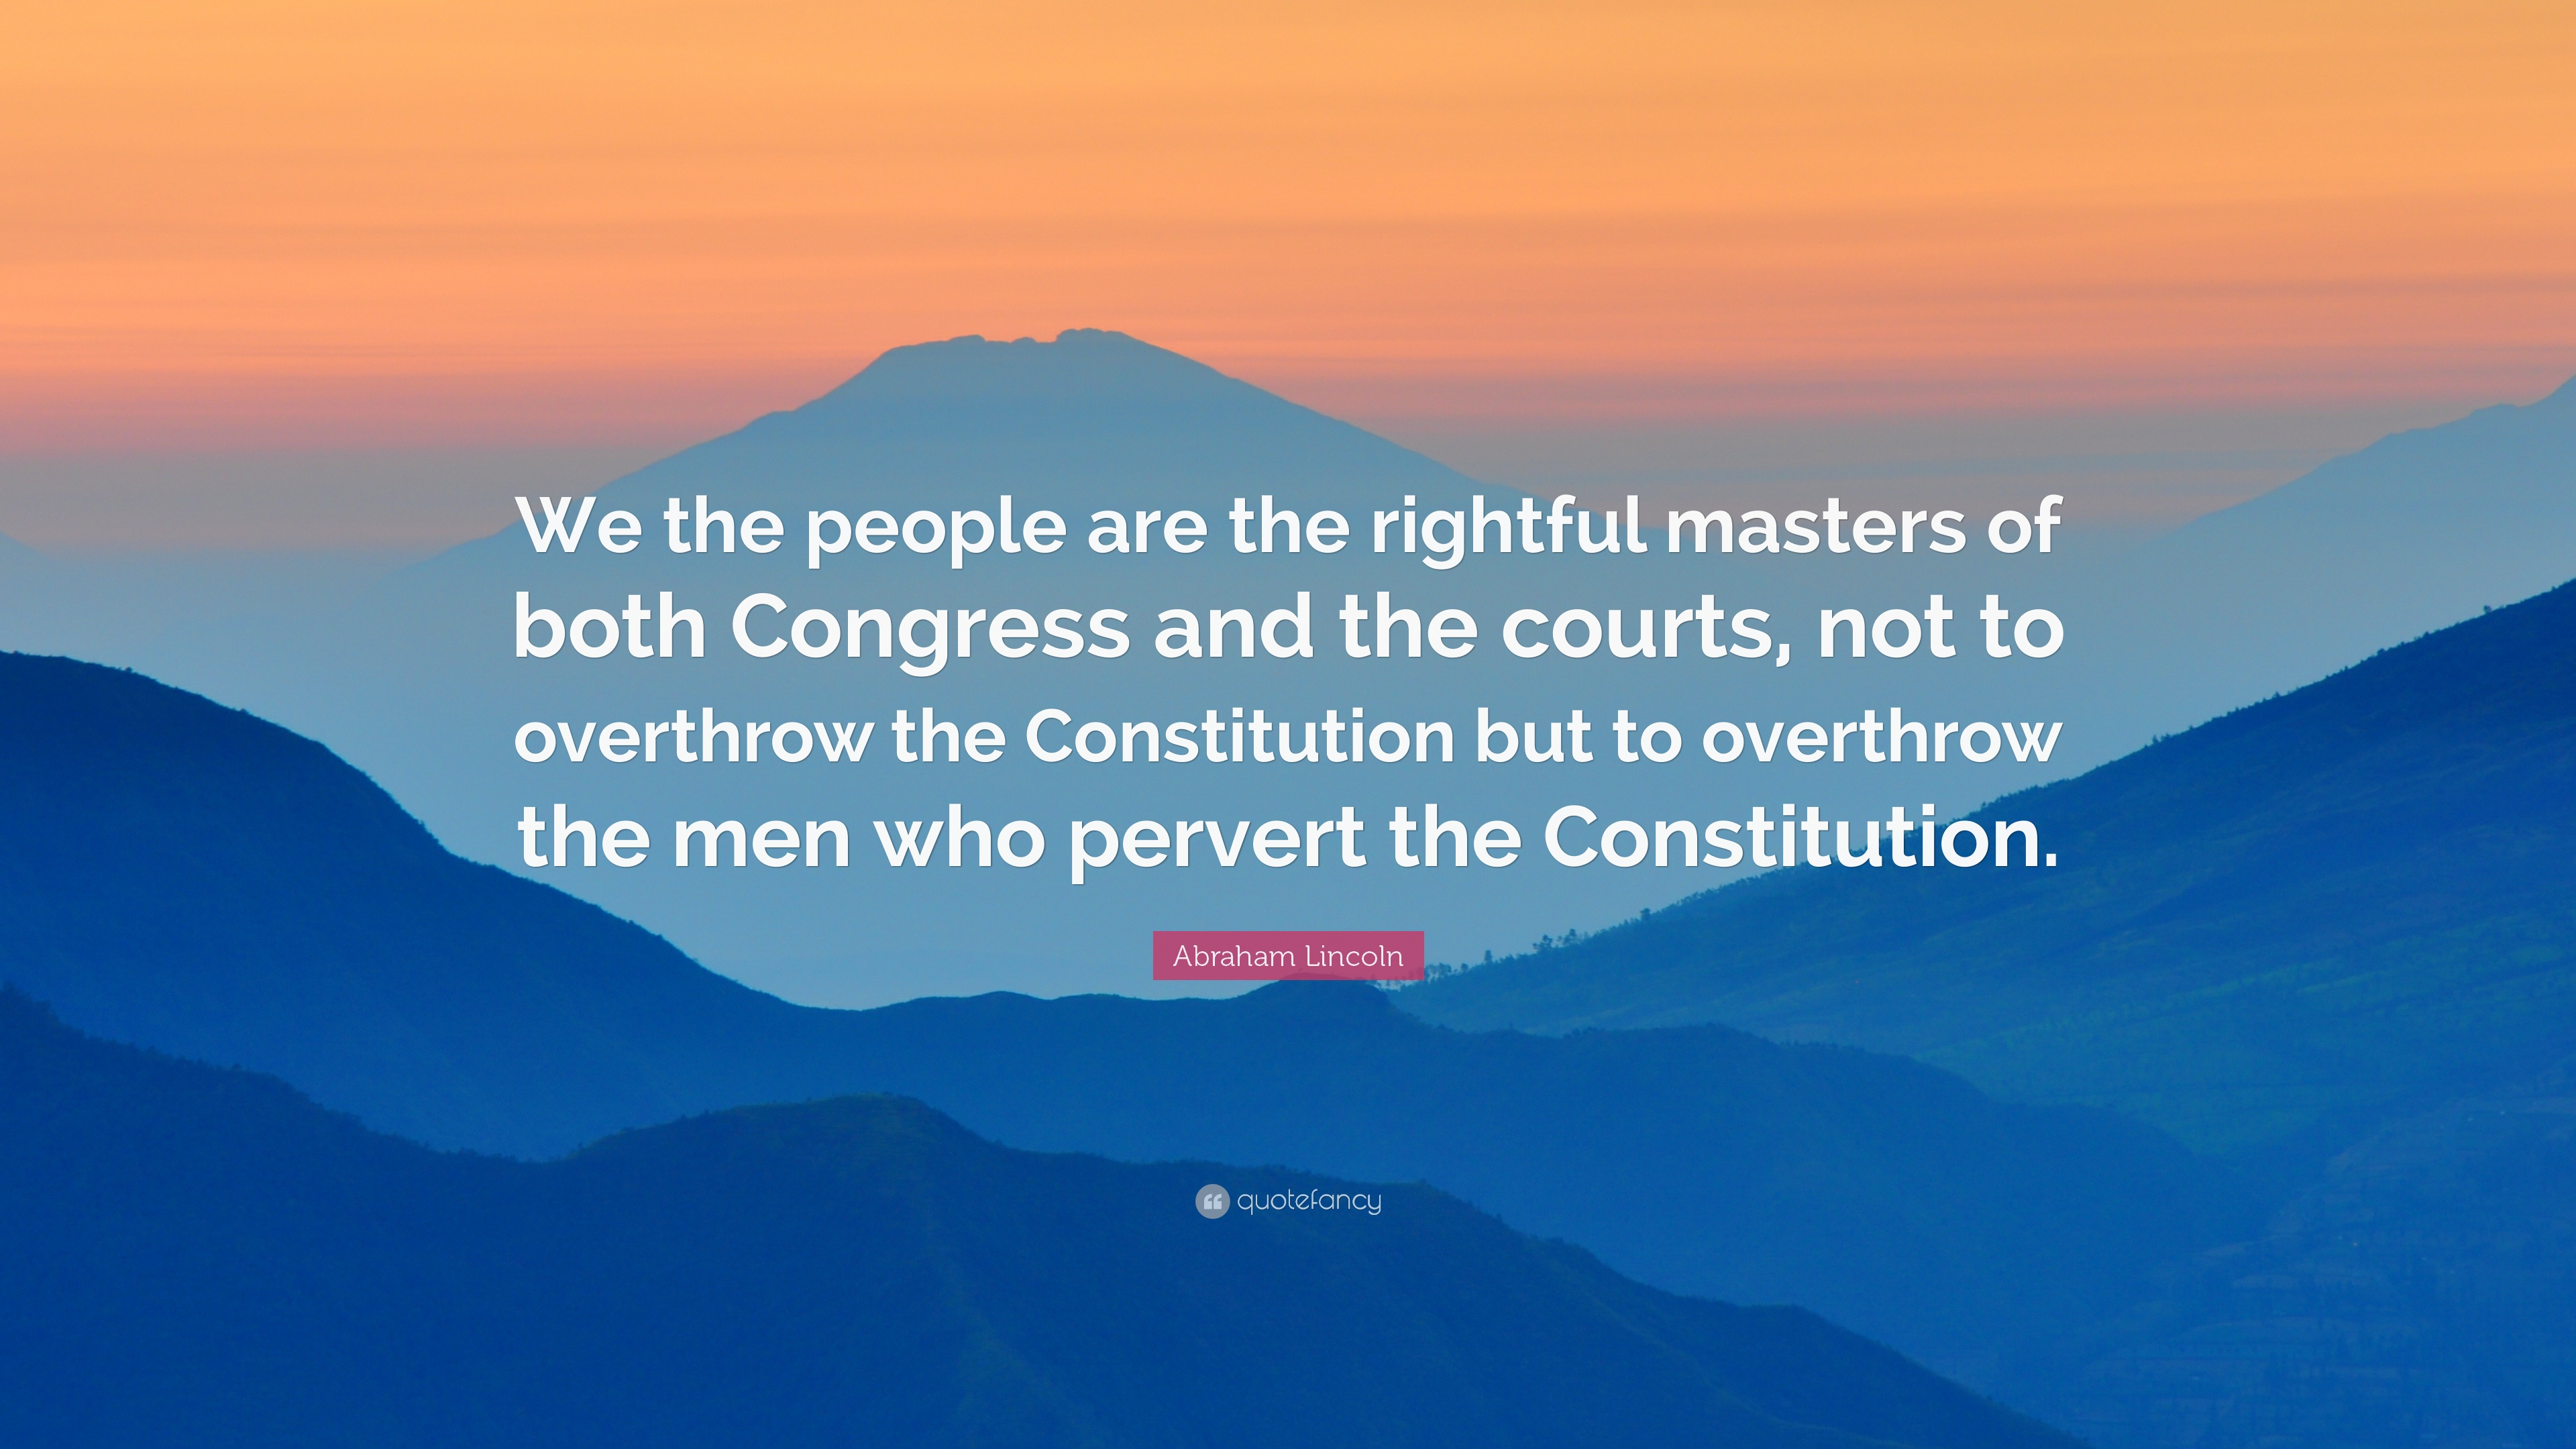 abraham lincoln quote we the people are the rightful masters of